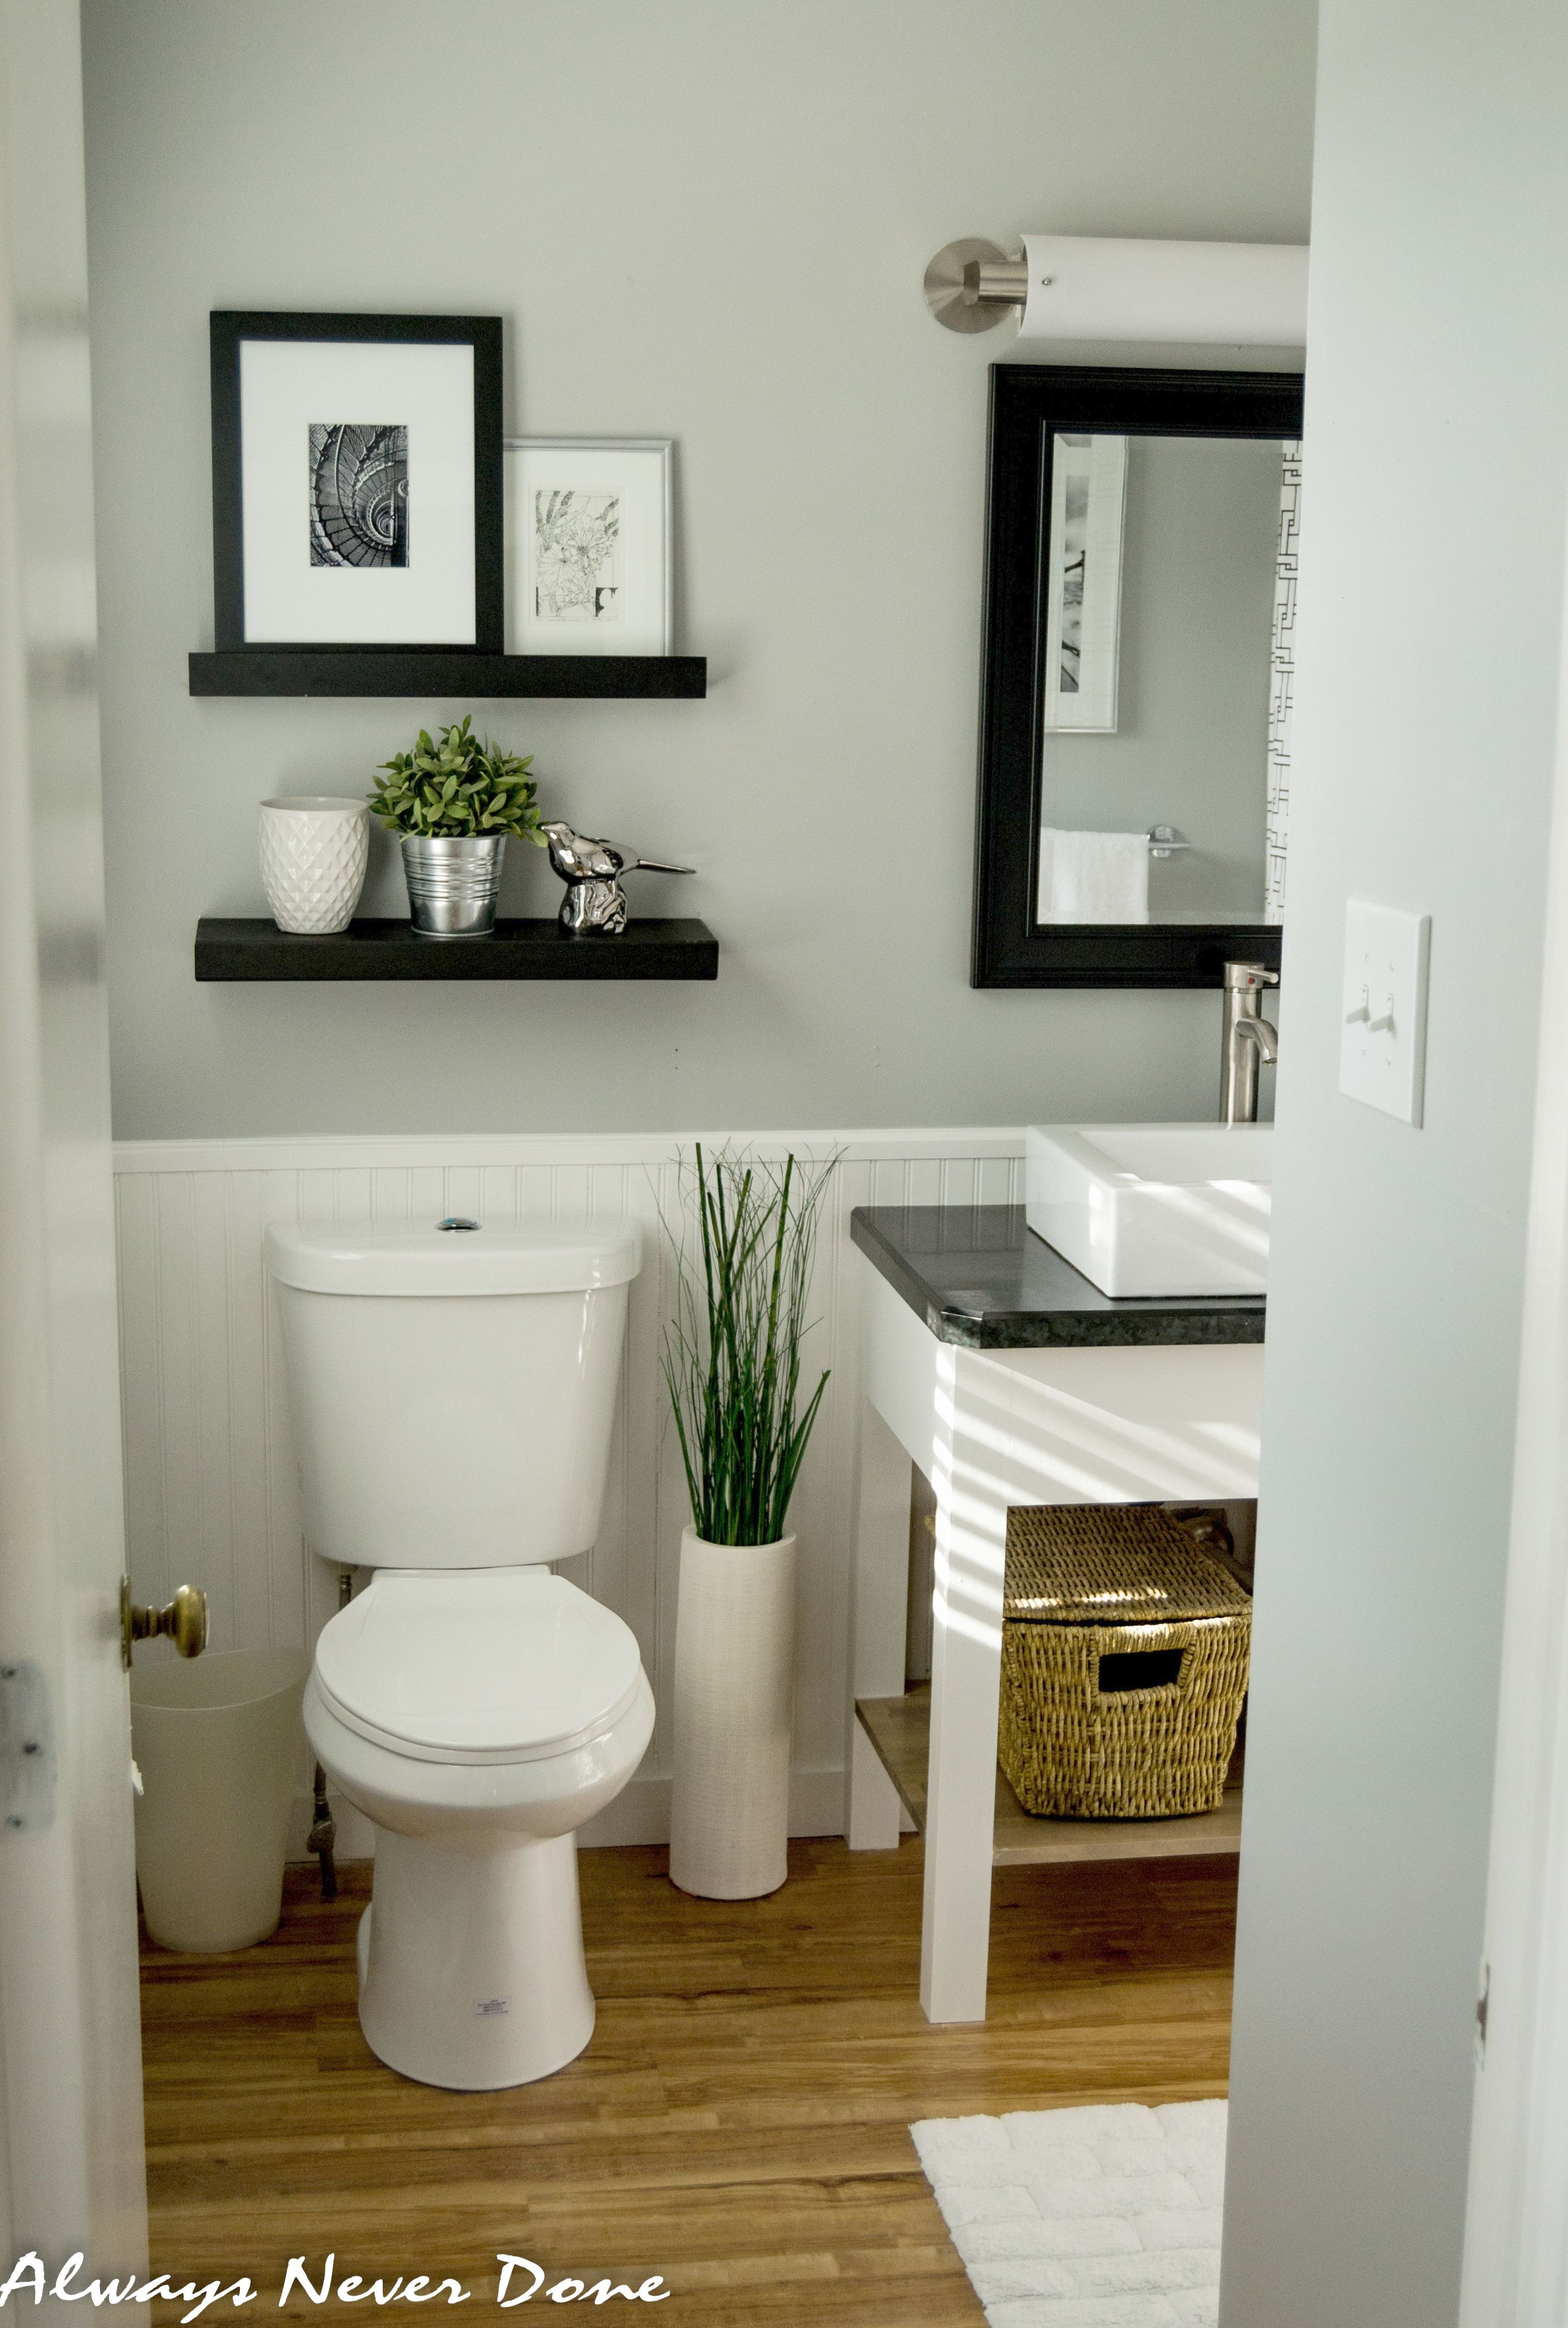 Serene Small Master Bathroom Renovation Done In A Thrifty Way